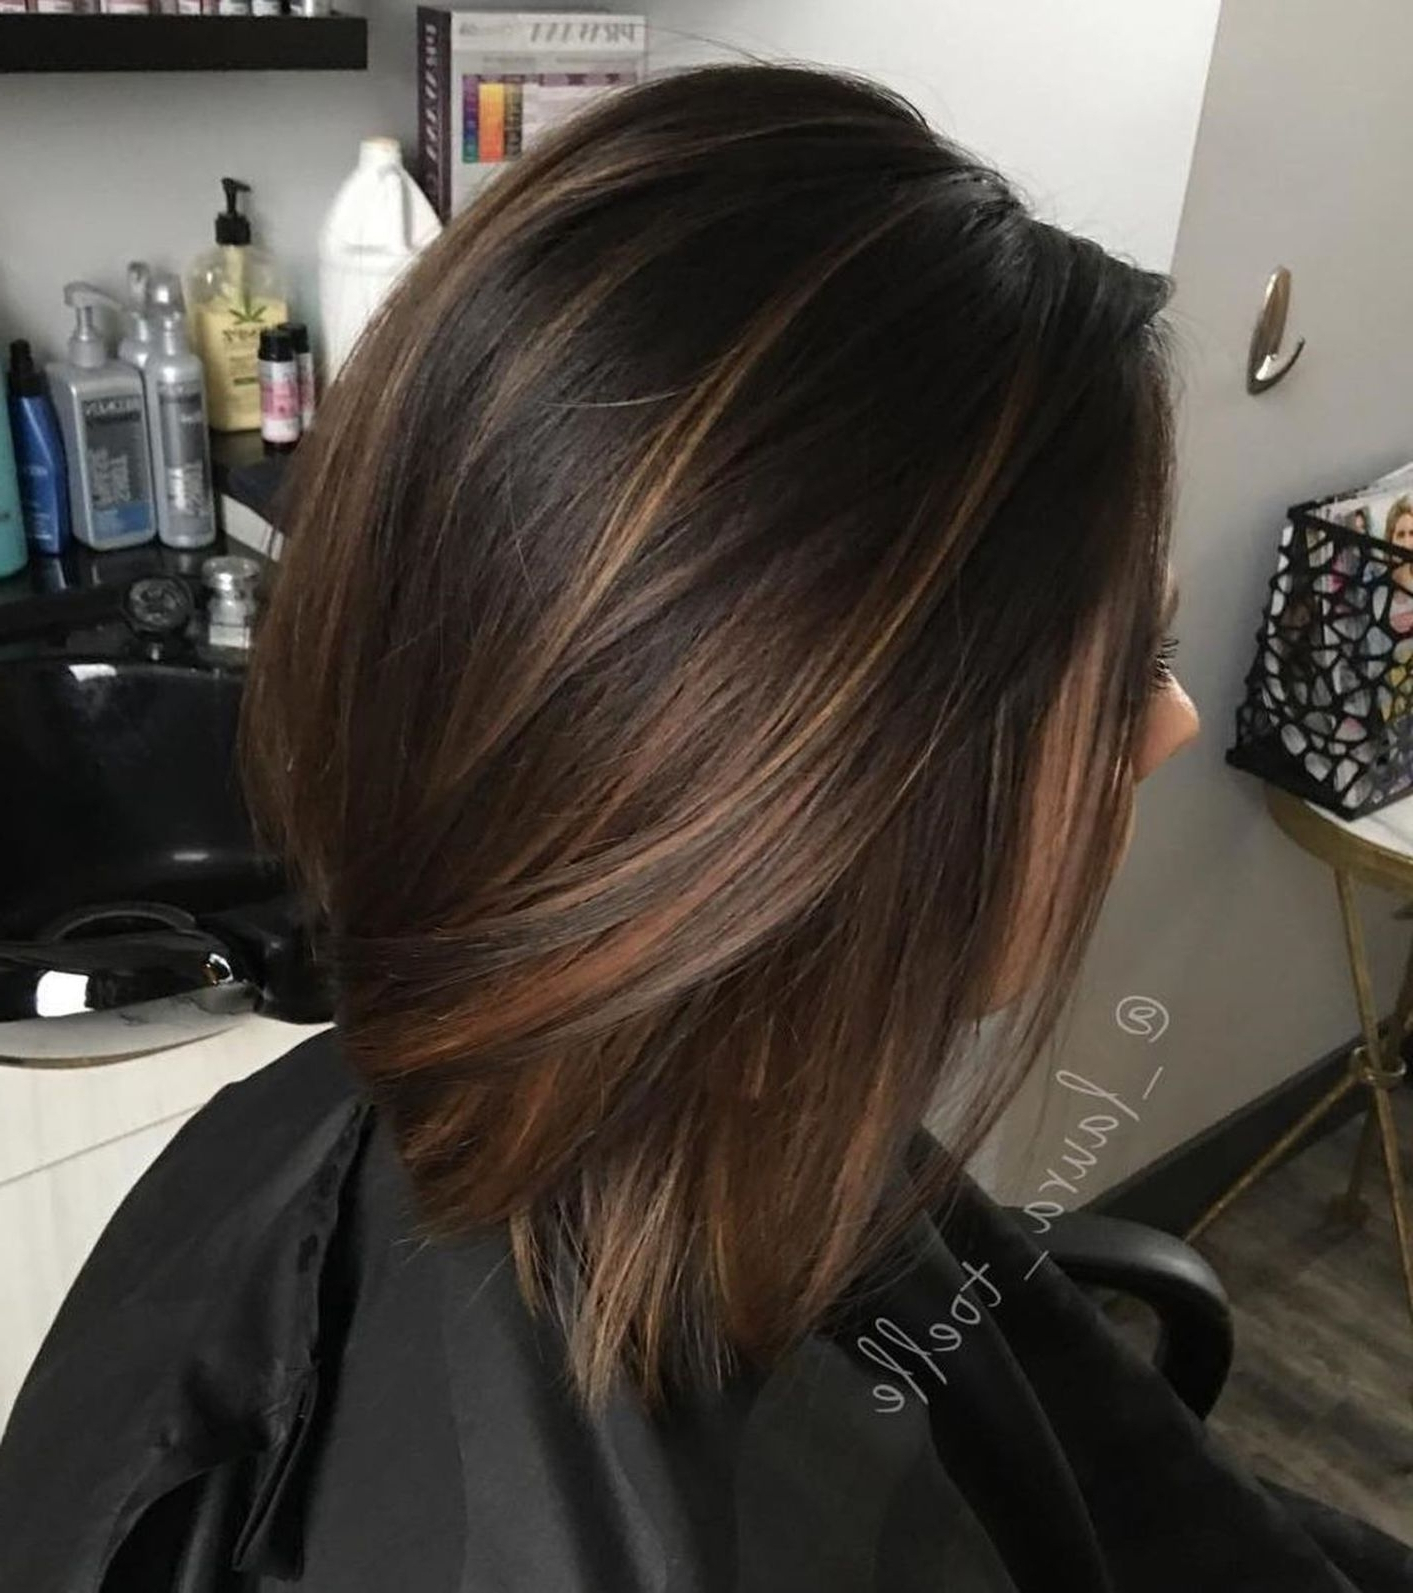 Uneek Highlights On A Bob Haircut For Brown Skin – Wavy Throughout Short Brown Hairstyles With Subtle Highlights (View 10 of 20)